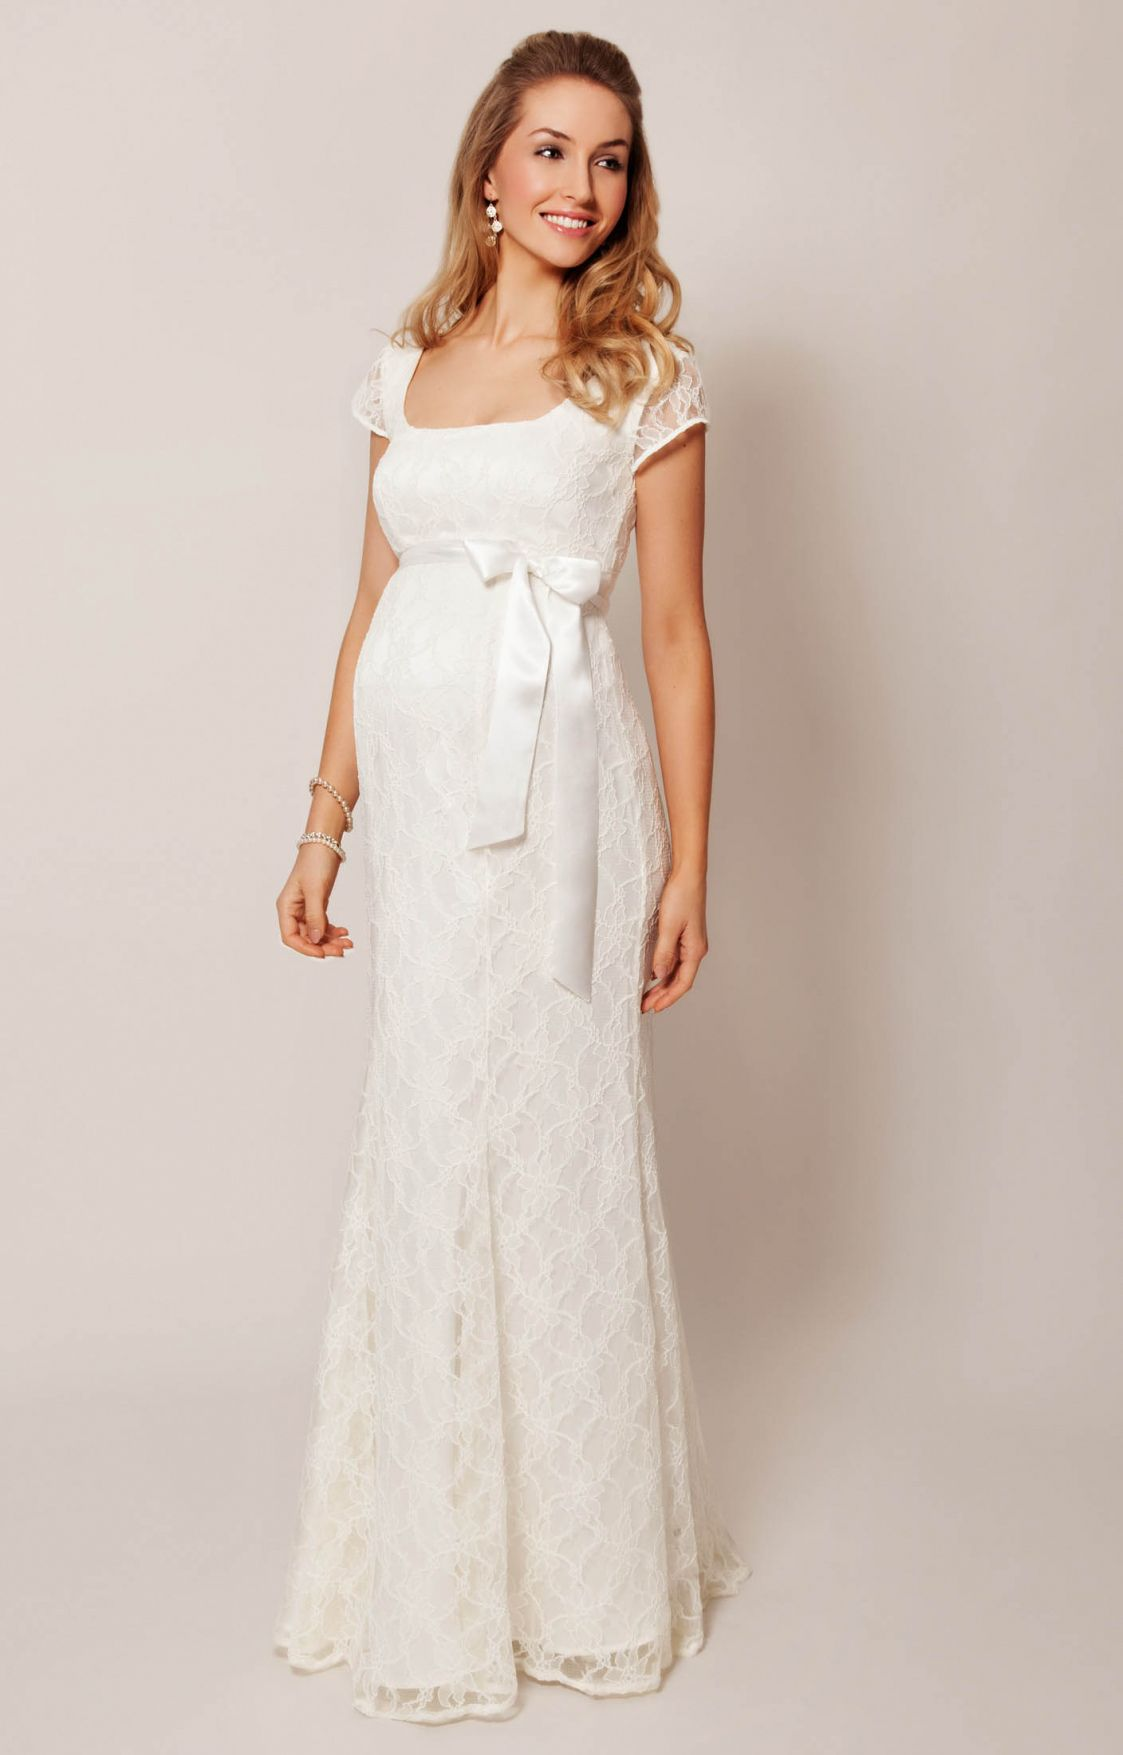 Lace Maternity Wedding Dress  Country Dresses for Weddings